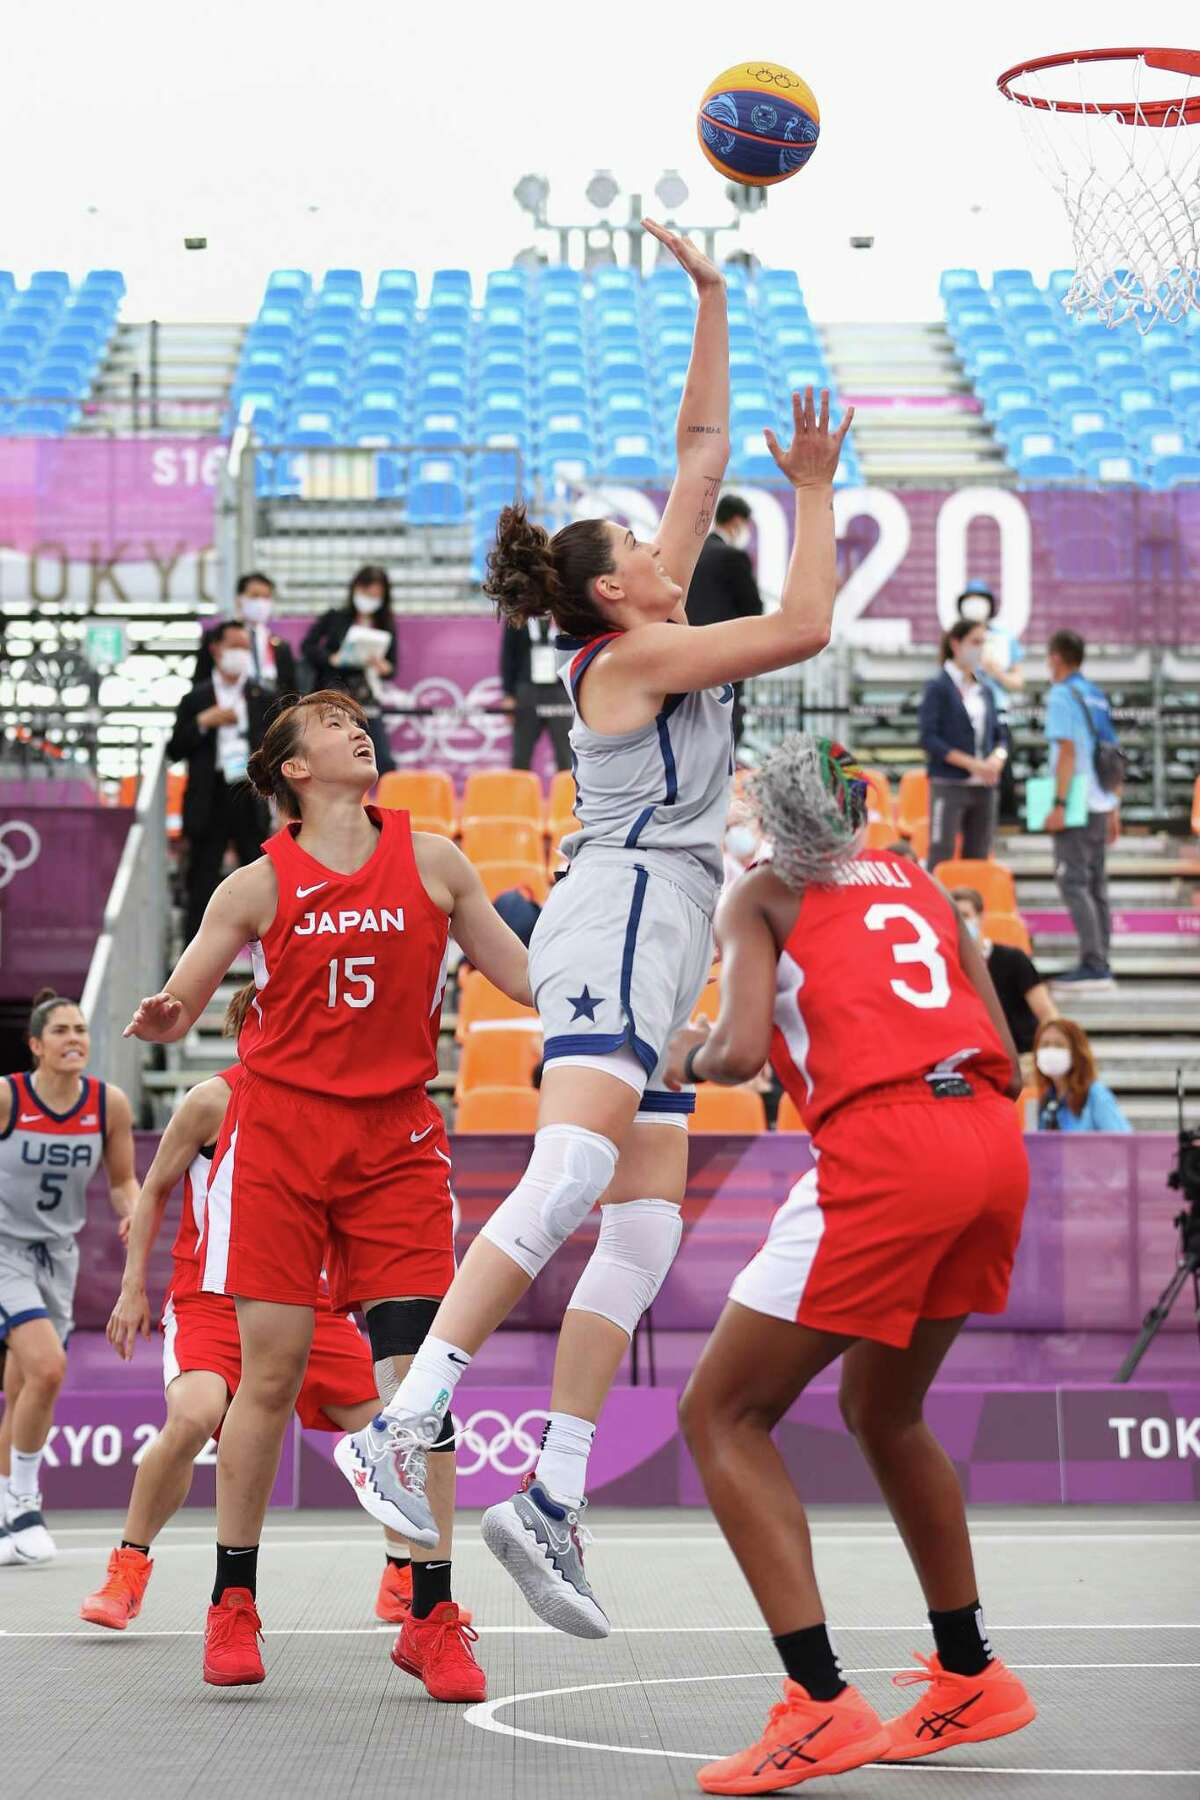 Stefanie Dolson of Team United States, drives to the basket in the 3x3 Basketball competition at the Tokyo 2020 Olympic Games on Tuesday.